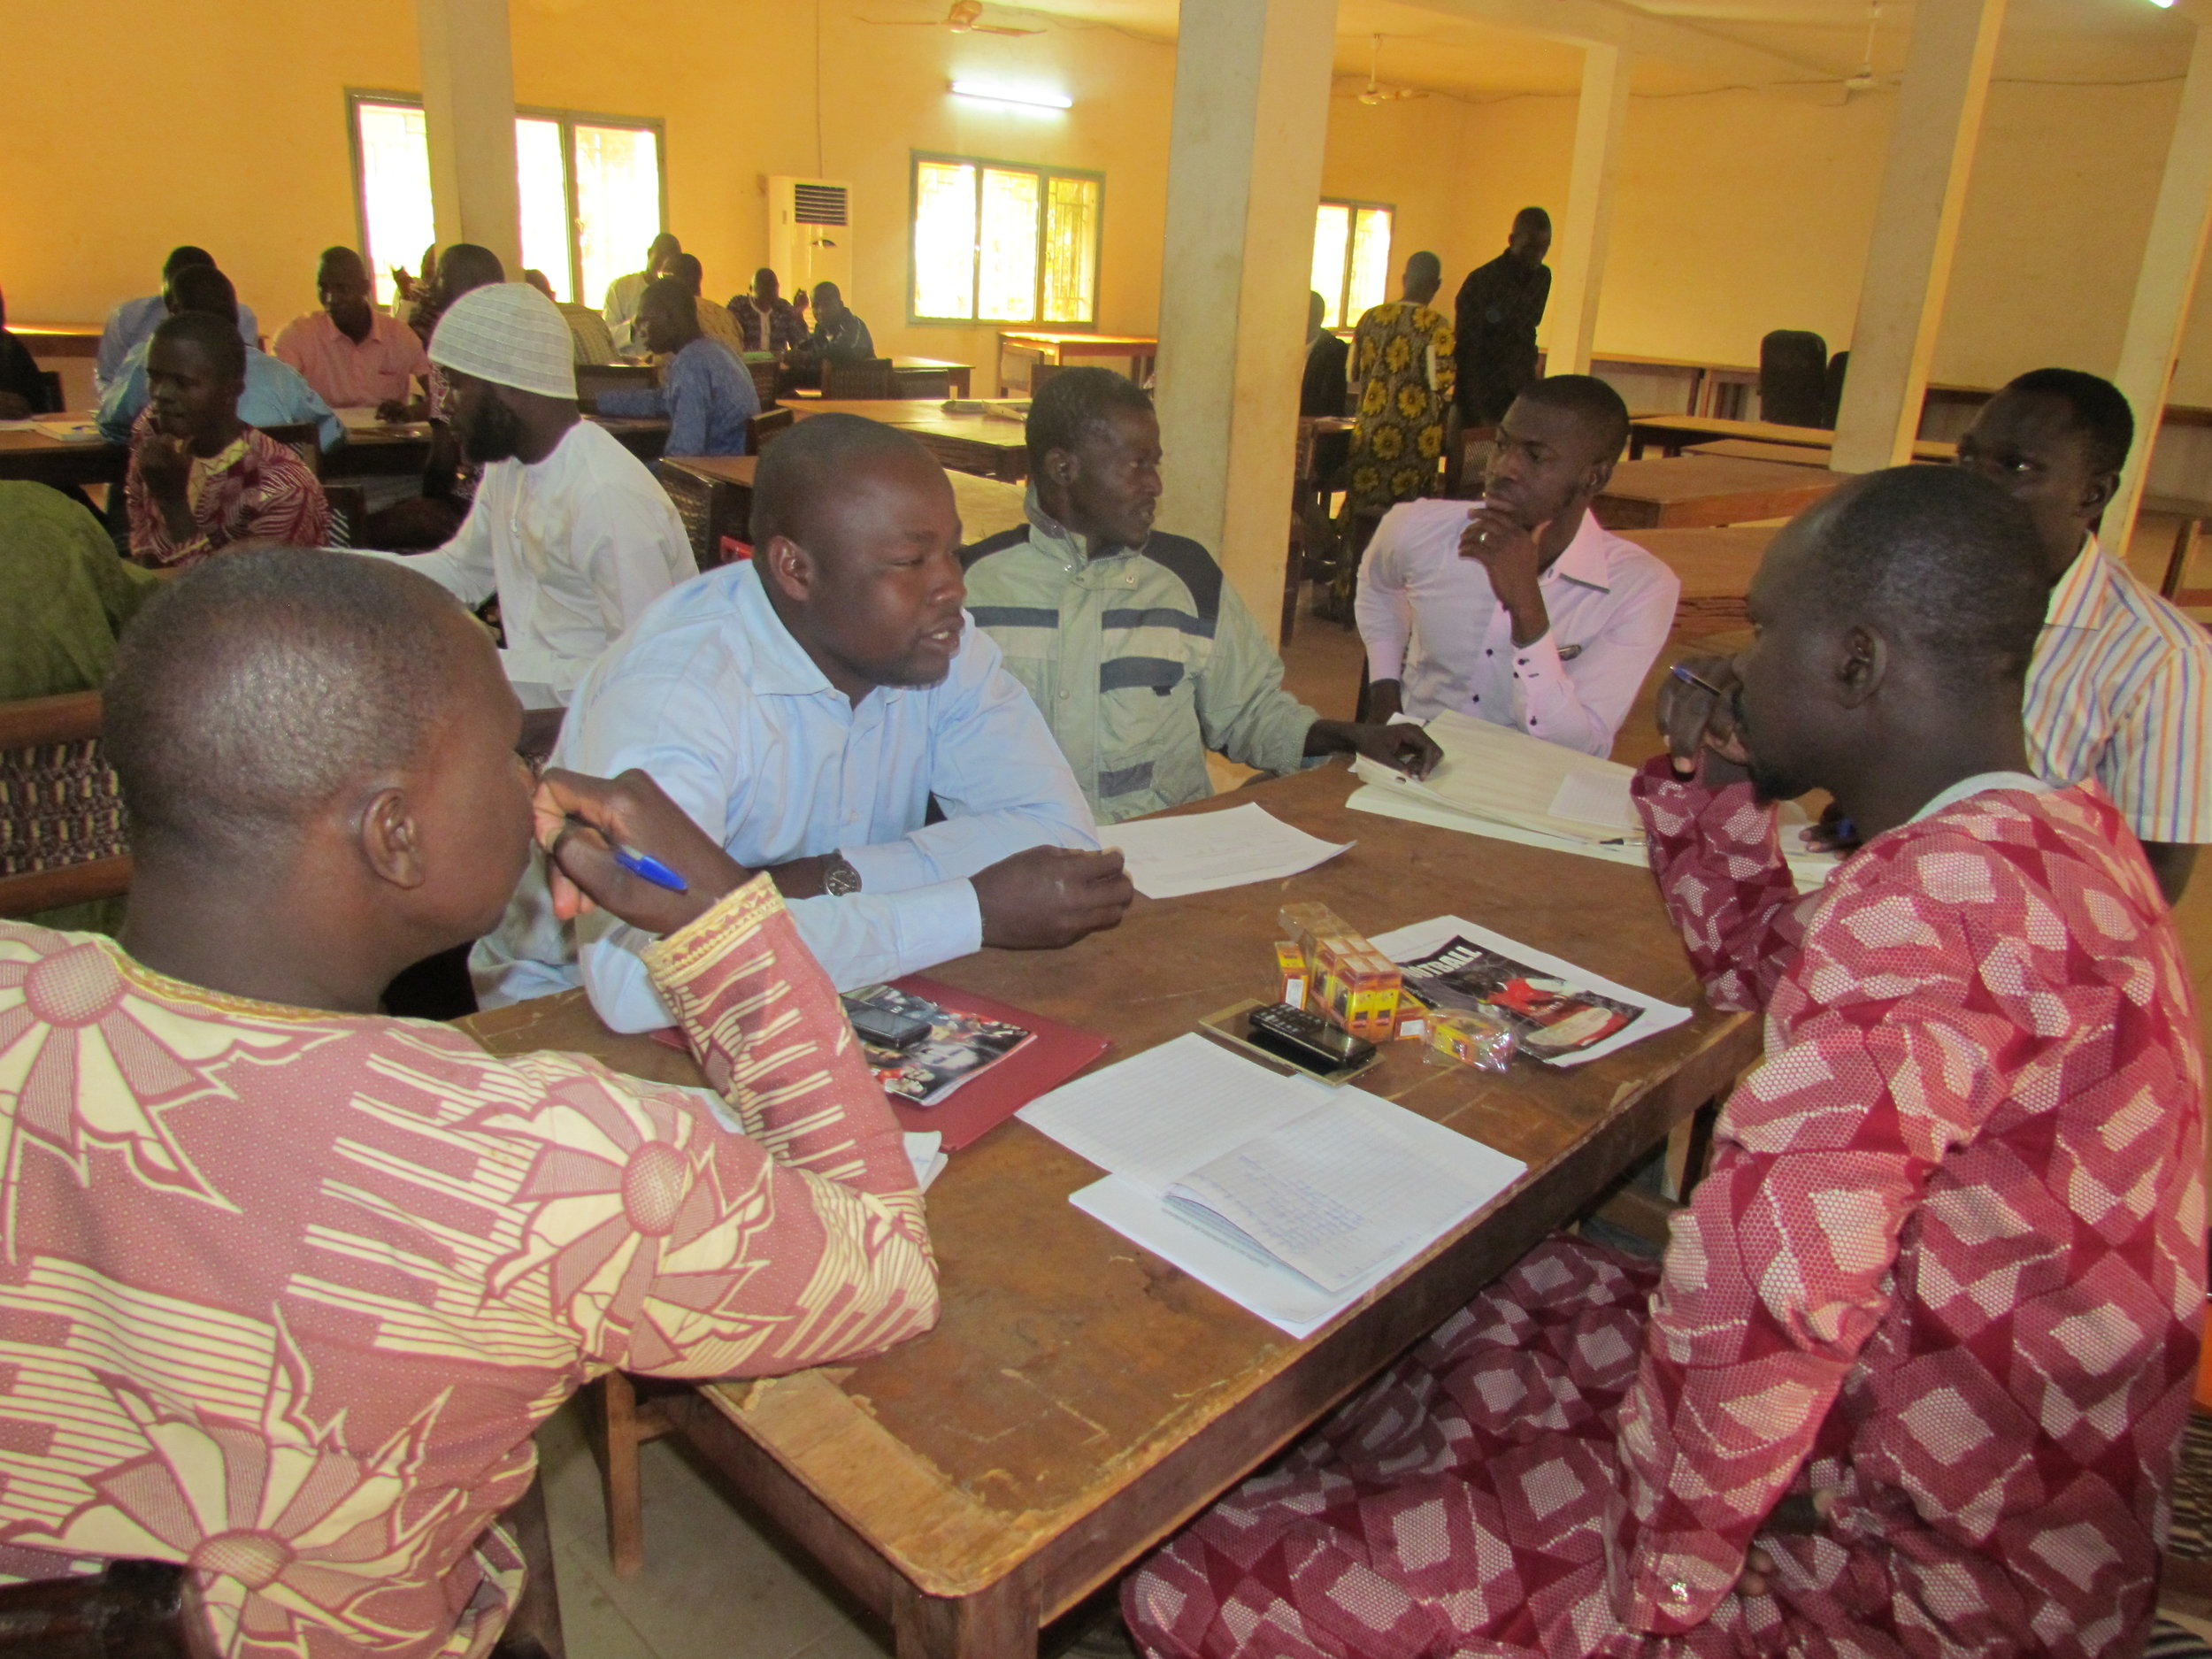 Interestingly, most teachers in Mali are male. But as you can see here, they are very engaged in learning how to better serve all their students — male and female alike.